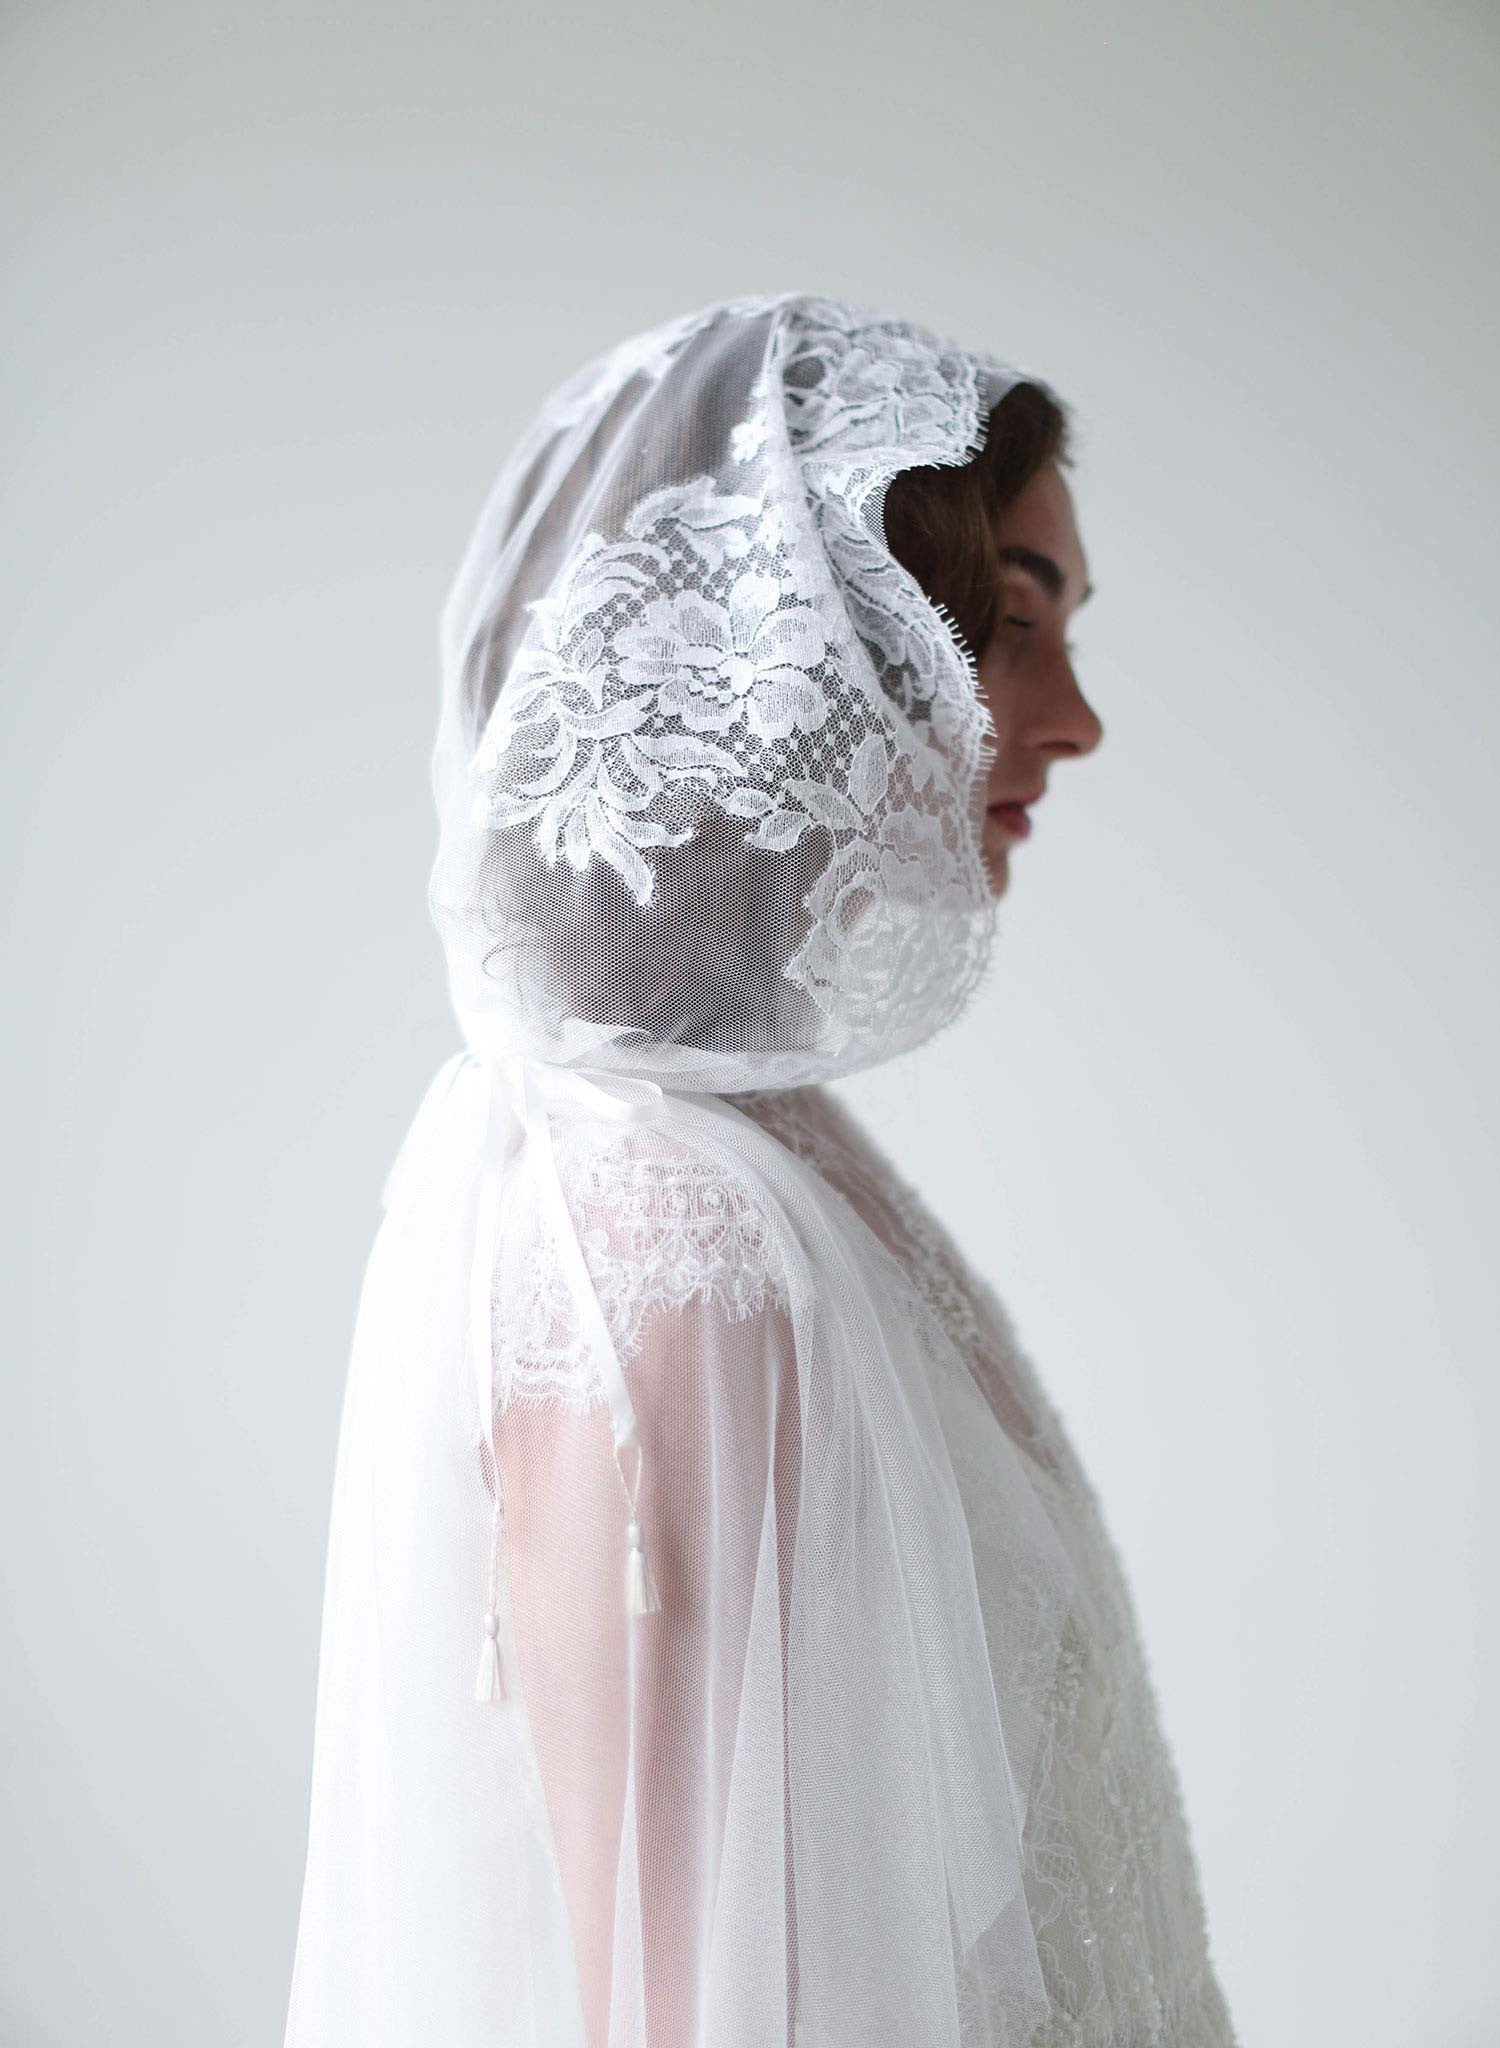 Mantilla lace trimmed veil with headband - Style #709